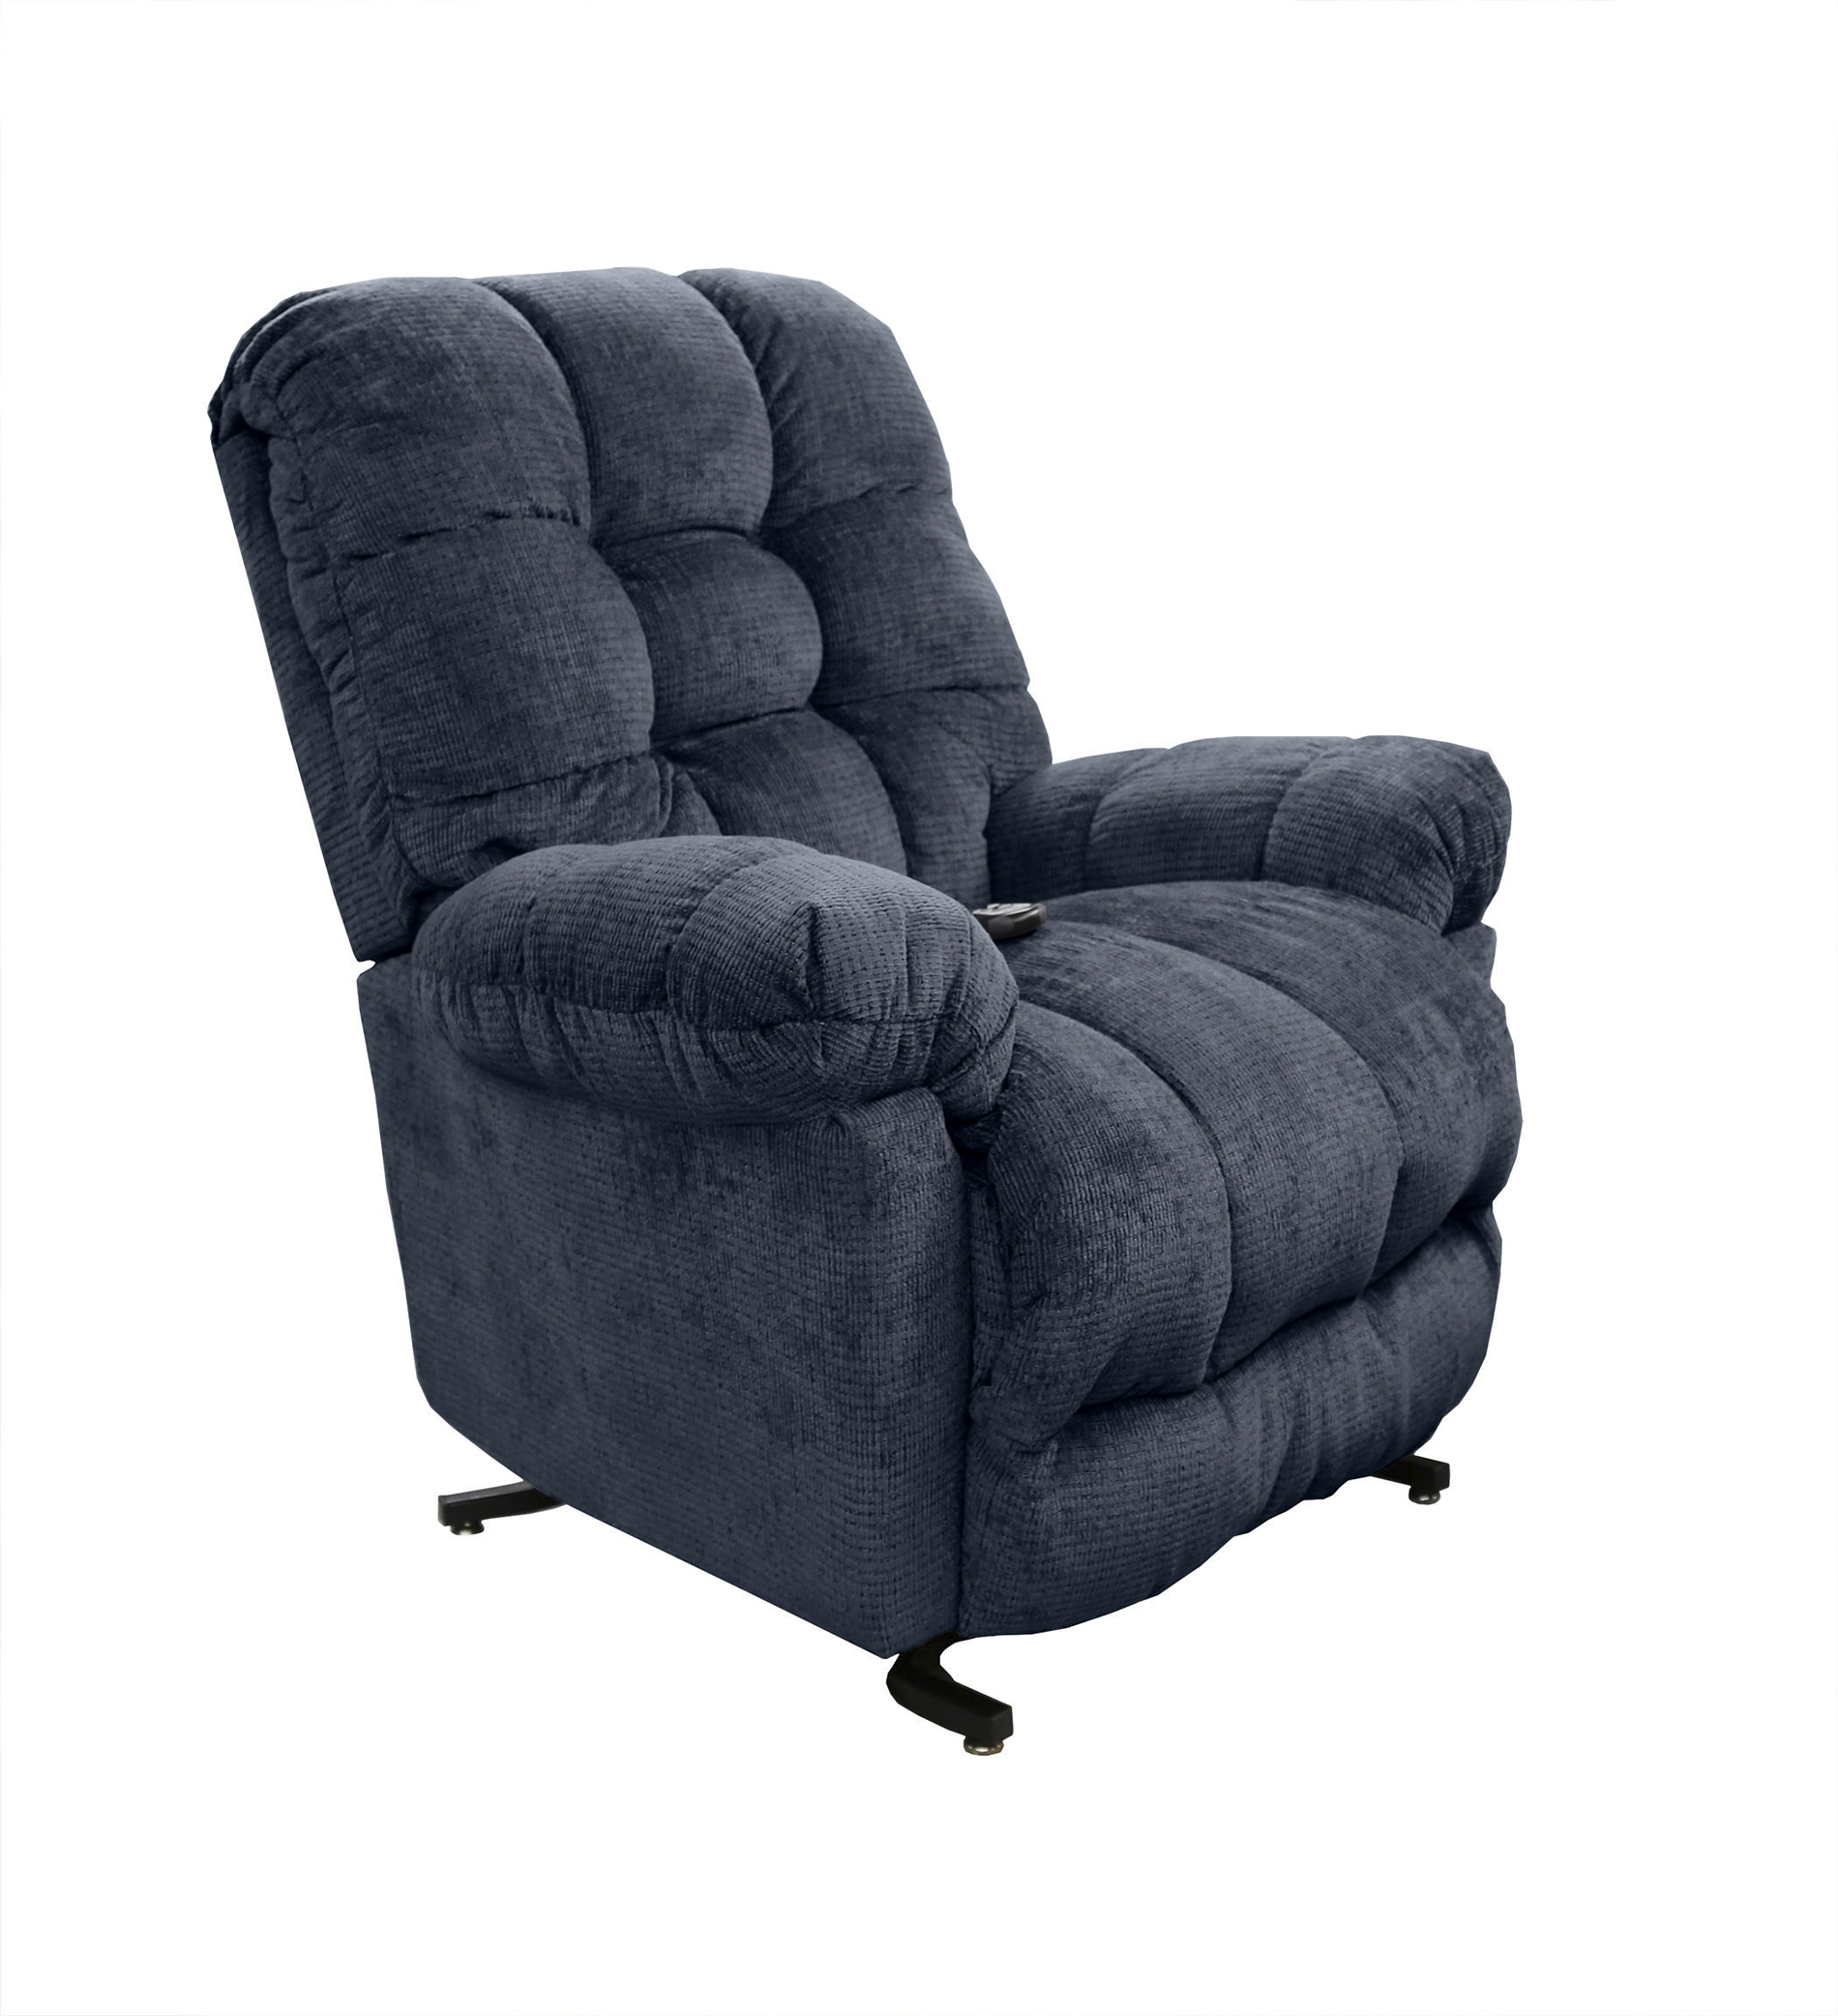 la z boy lift chair hand control navy blue club sears recliners chairs